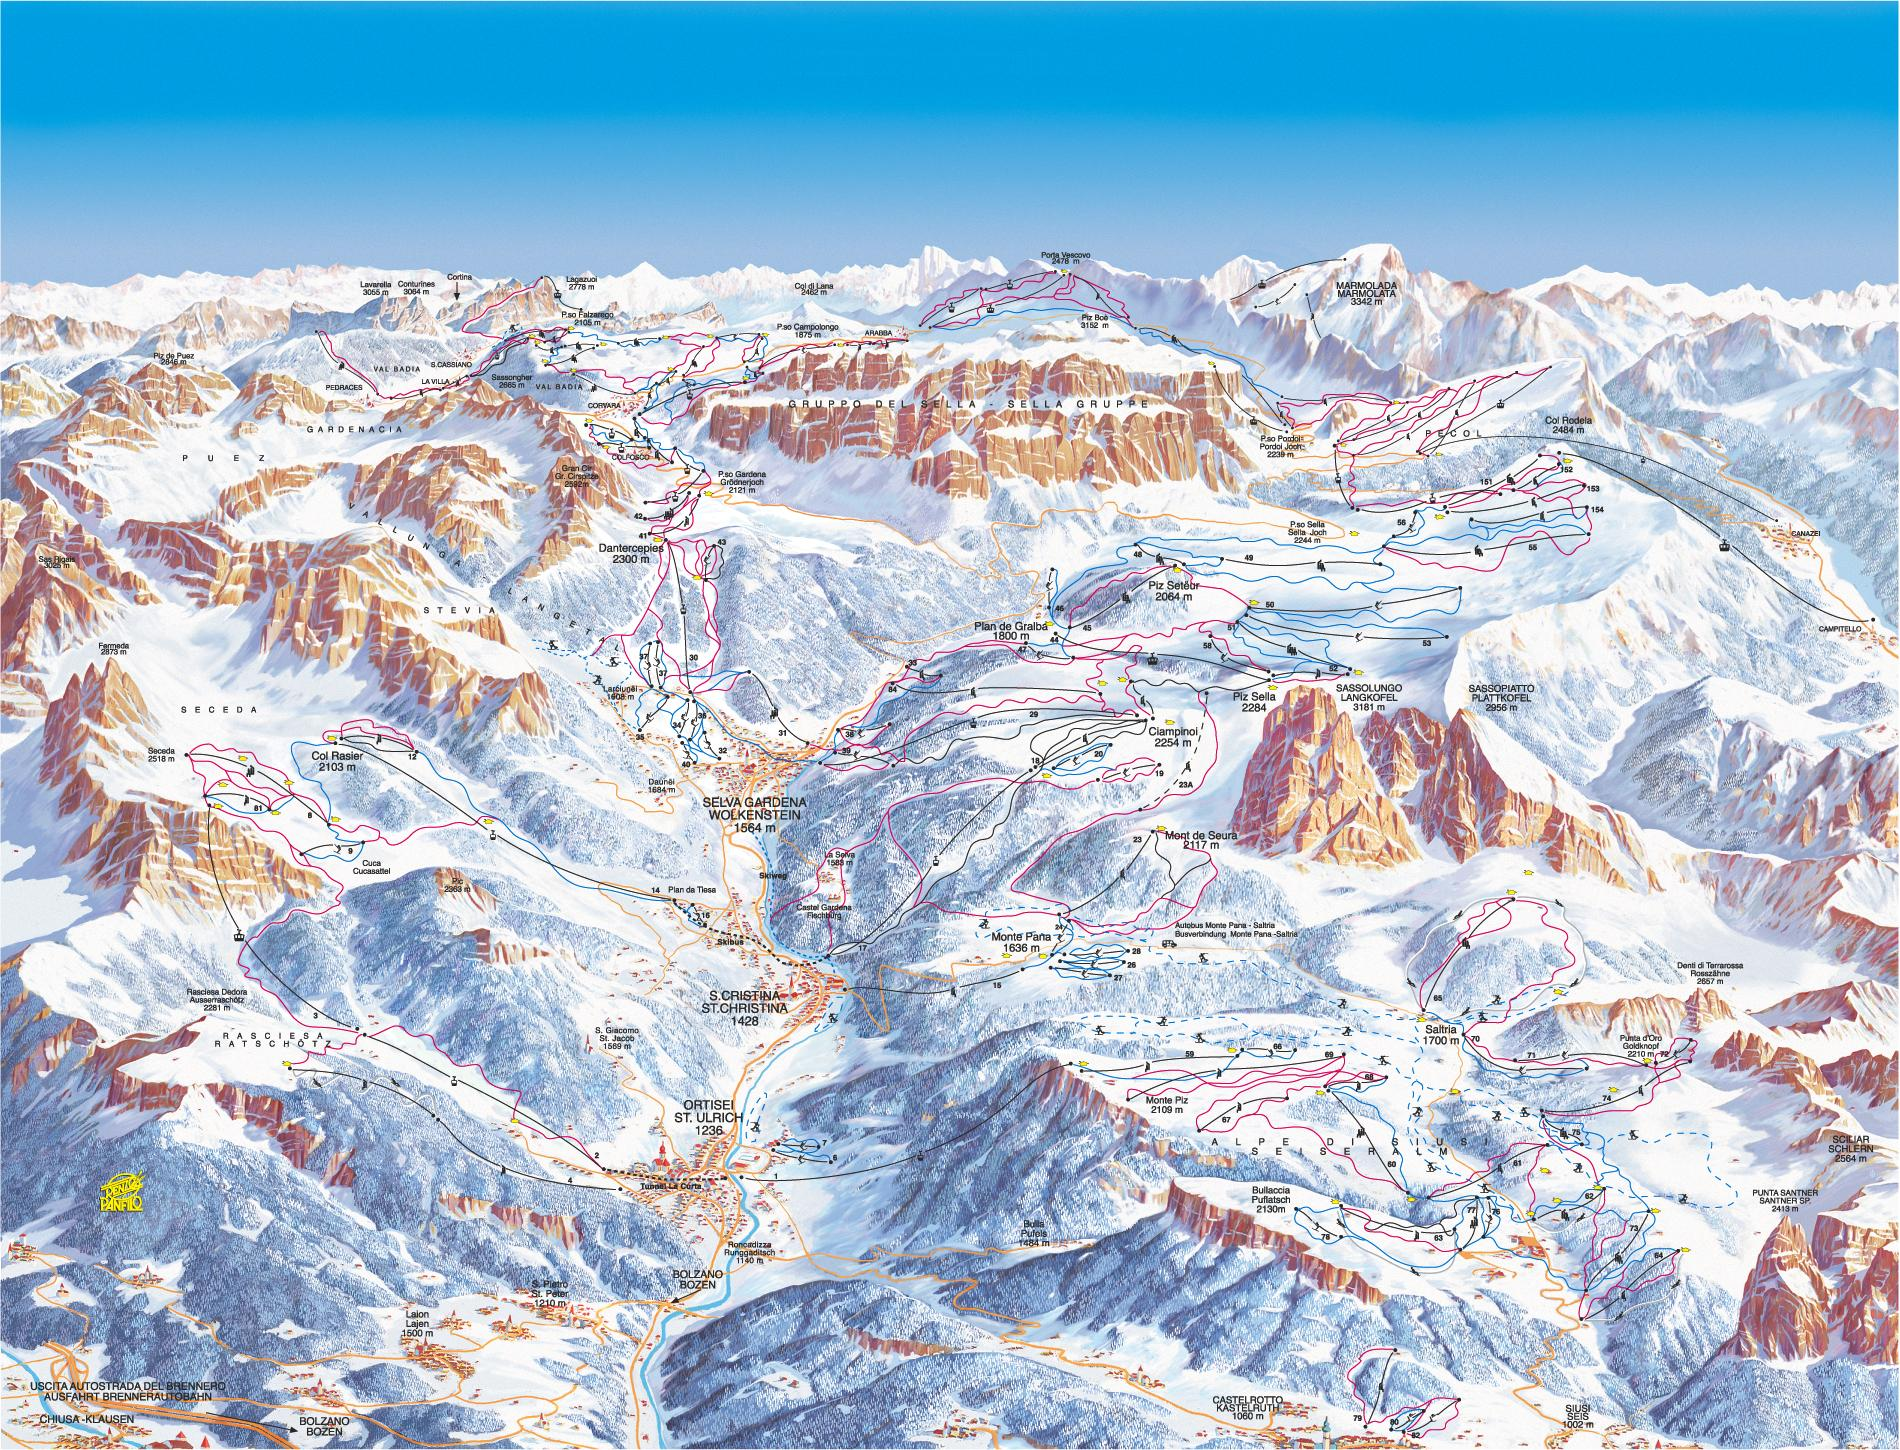 ORTISEI MAP WinterSportscom